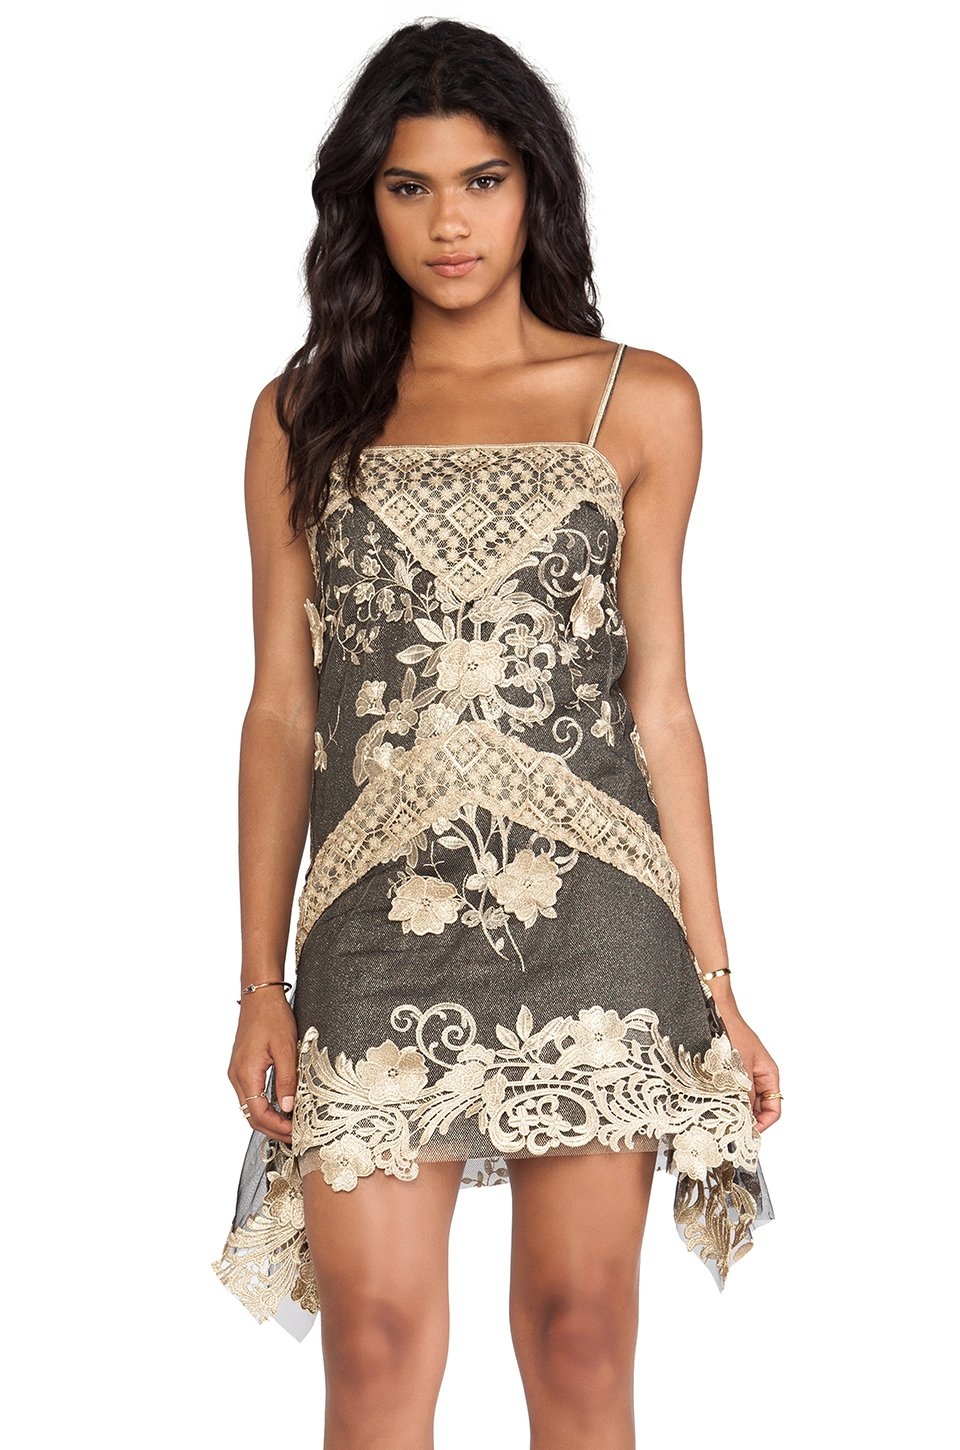 Anna Sui Fall Winter 2014 2015 New Women S Clothing Styles: Anna Sui Maiden Faire Lace Tank Dress In Black